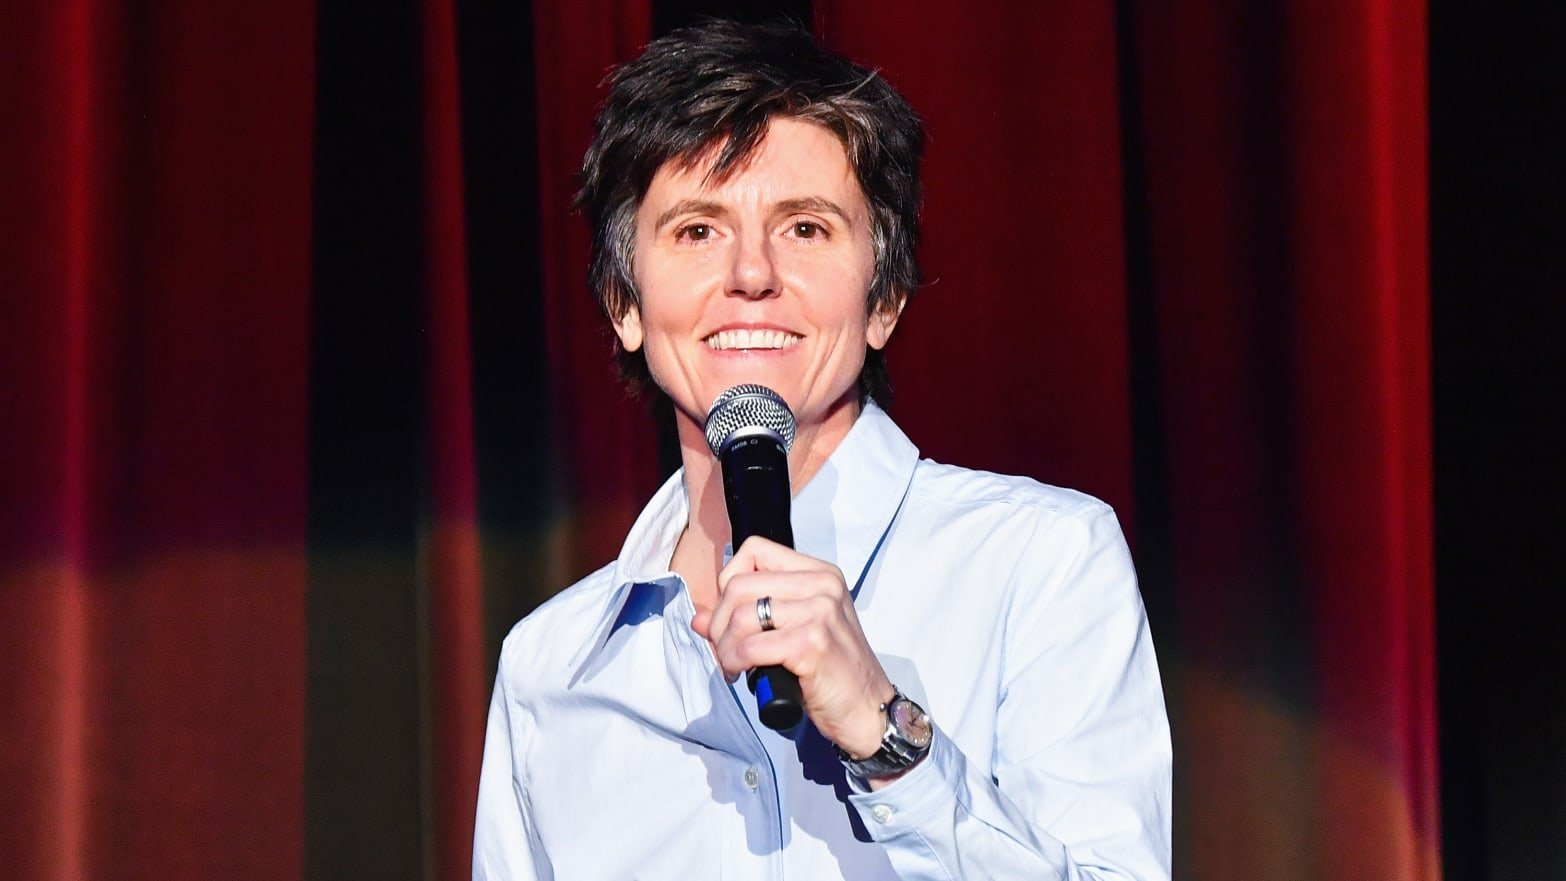 Tig Notaro: Drawn Watch Online for Free! HBO Original Special